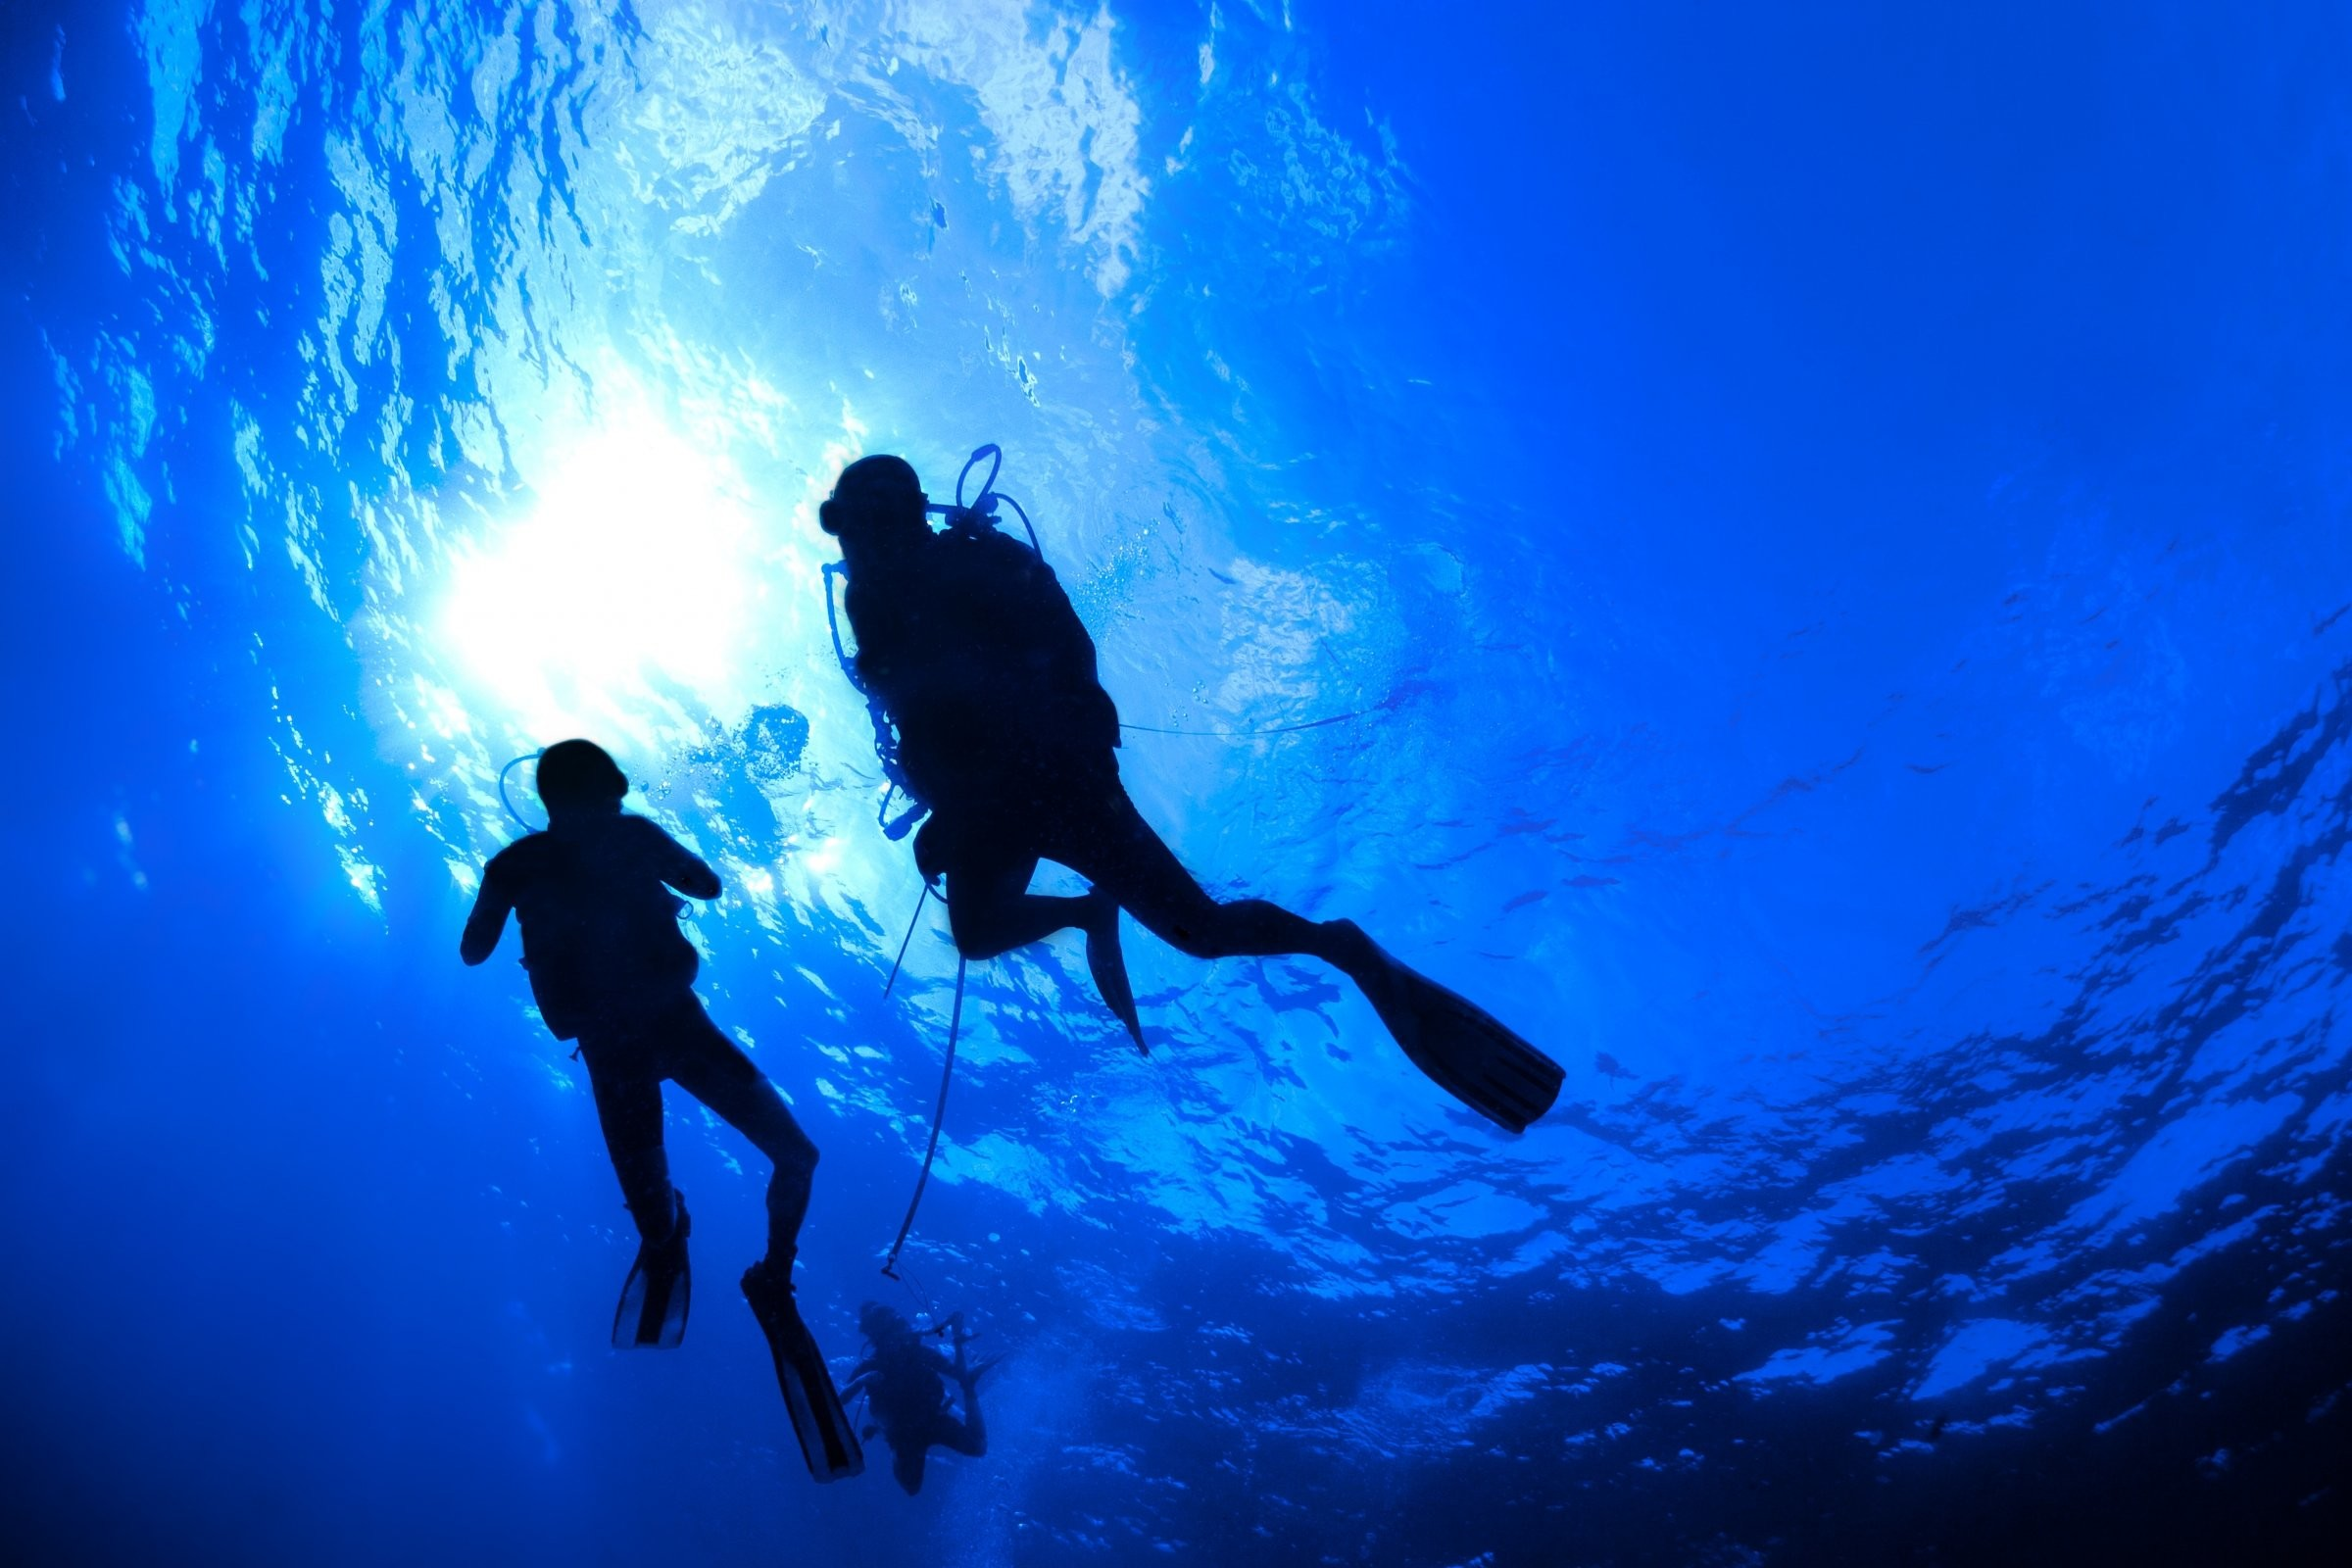 2400x1600 Scuba diving diver ocean sea underwater wallpaper |  | 332477 |  WallpaperUP